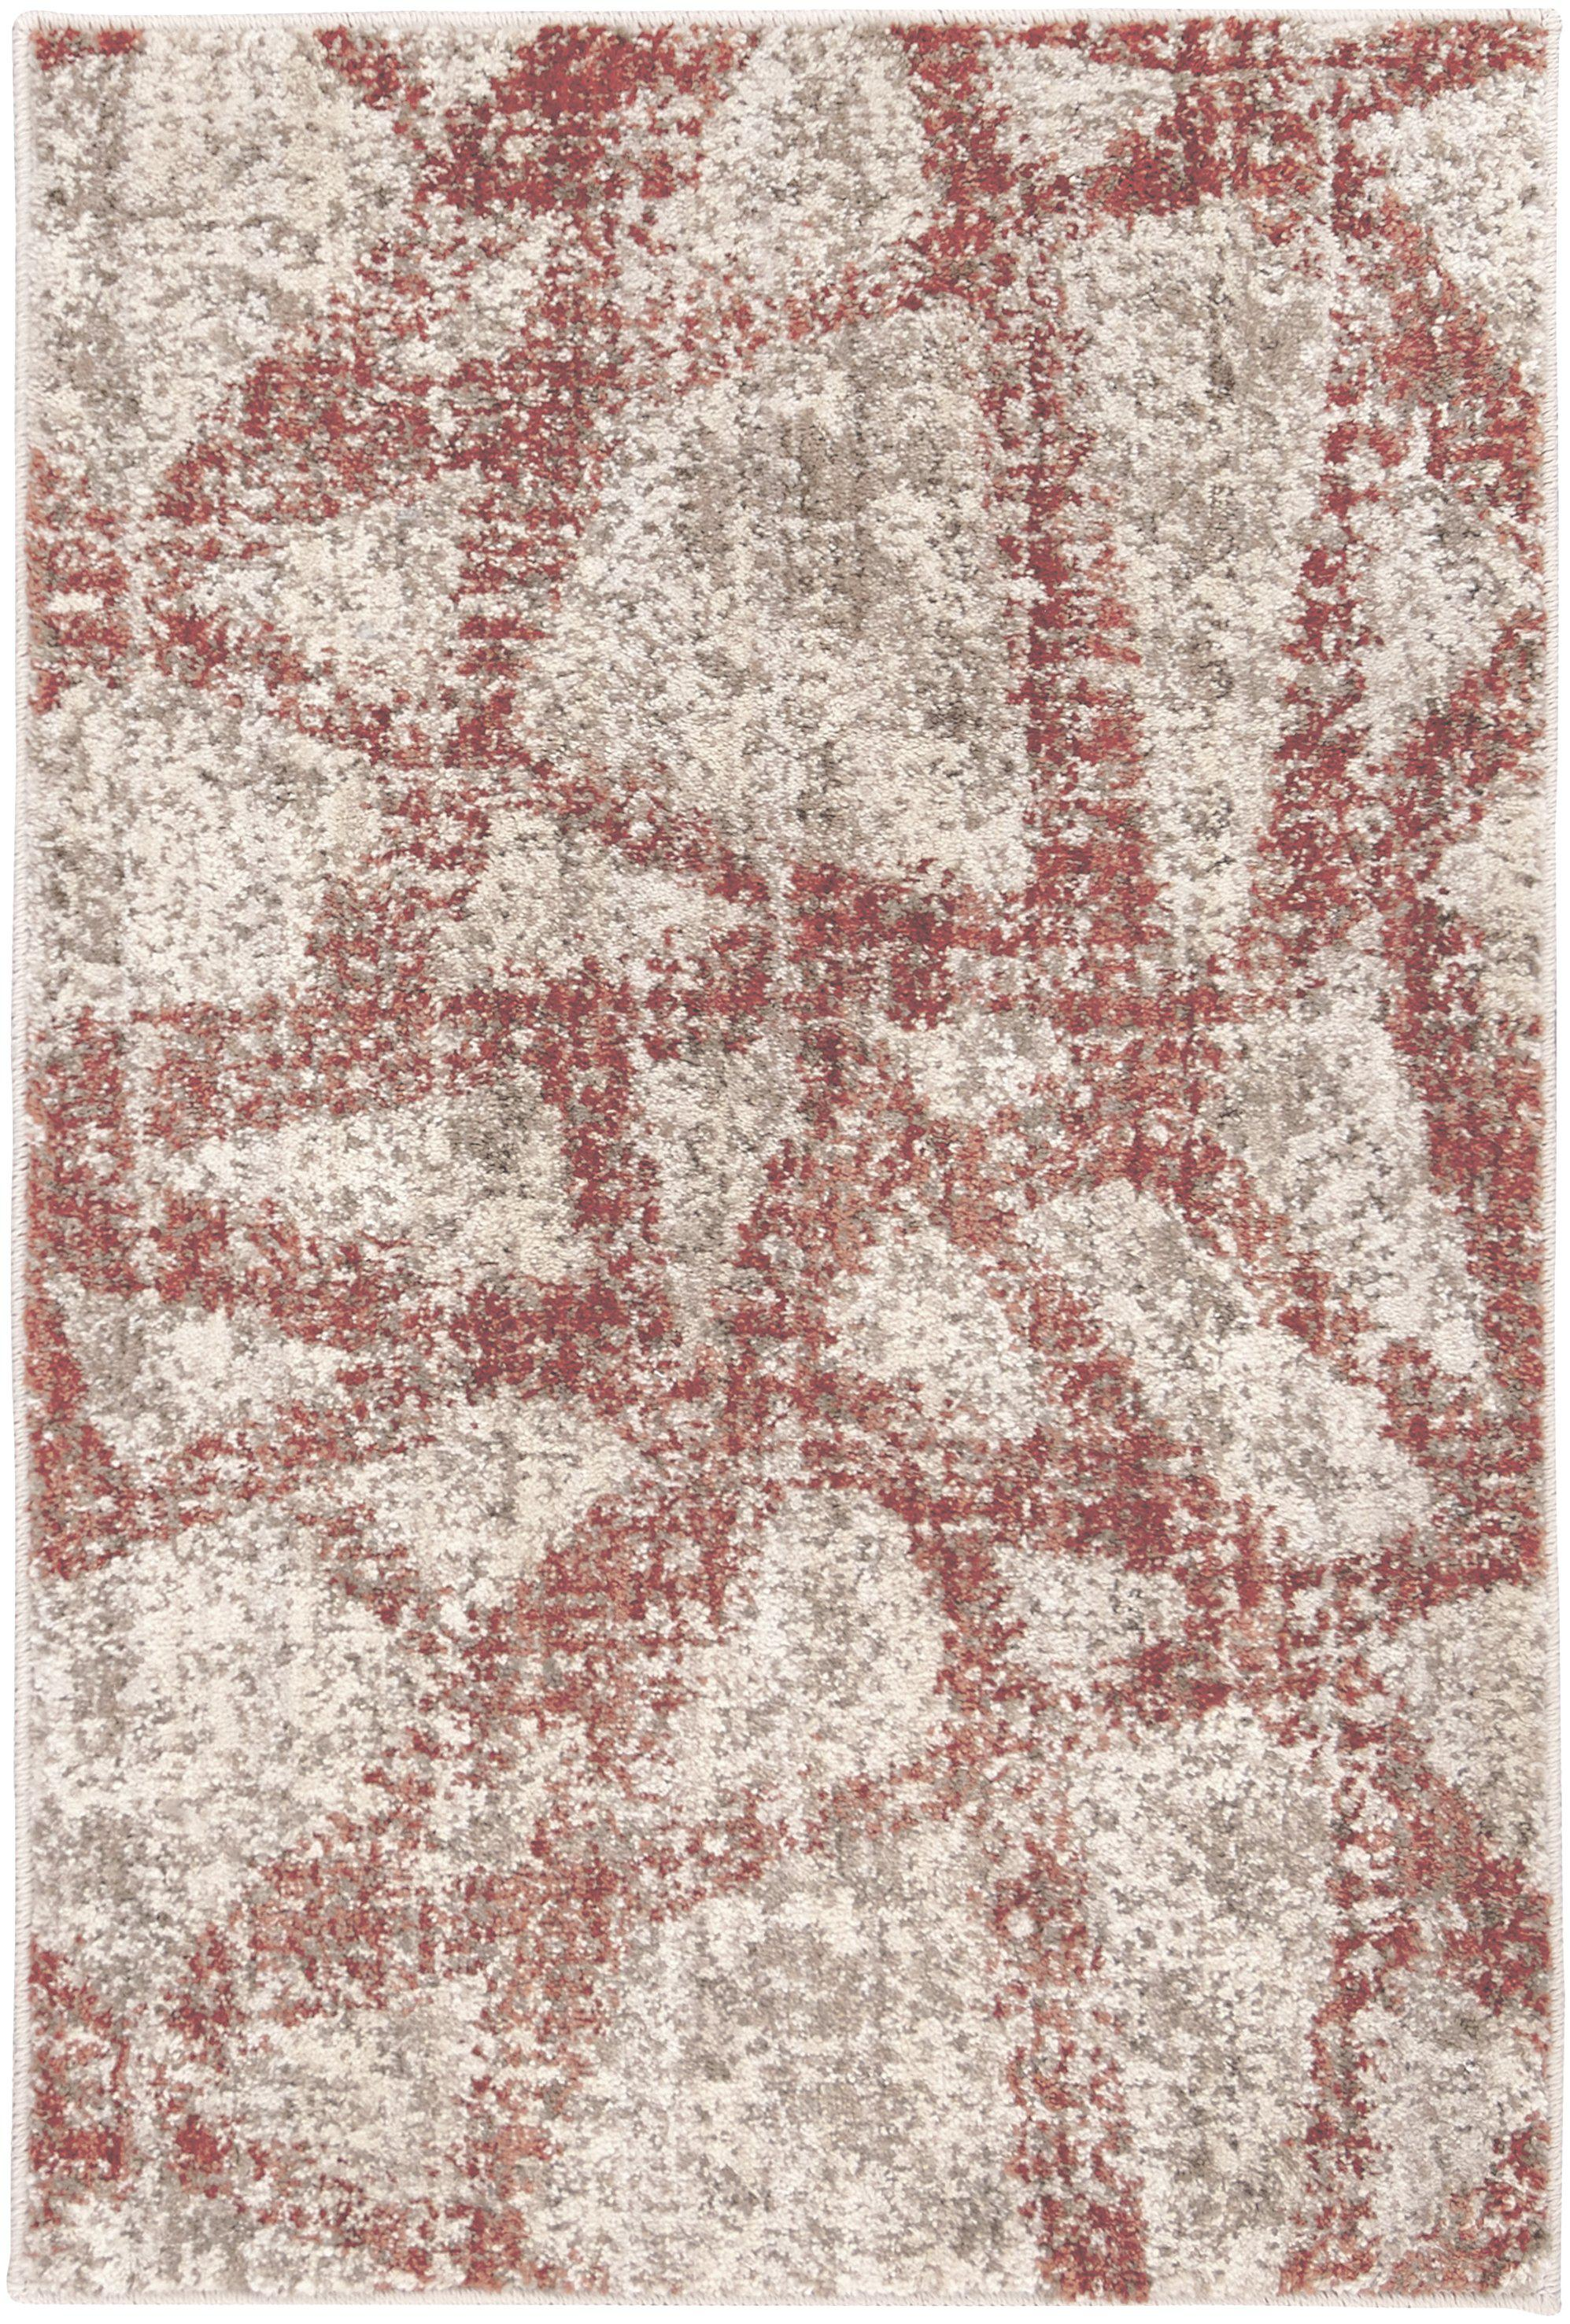 Expressions Solstice Ginger by Scott Living Area Rug-Area Rug-Scott Living-2'x3'-The Rug Truck